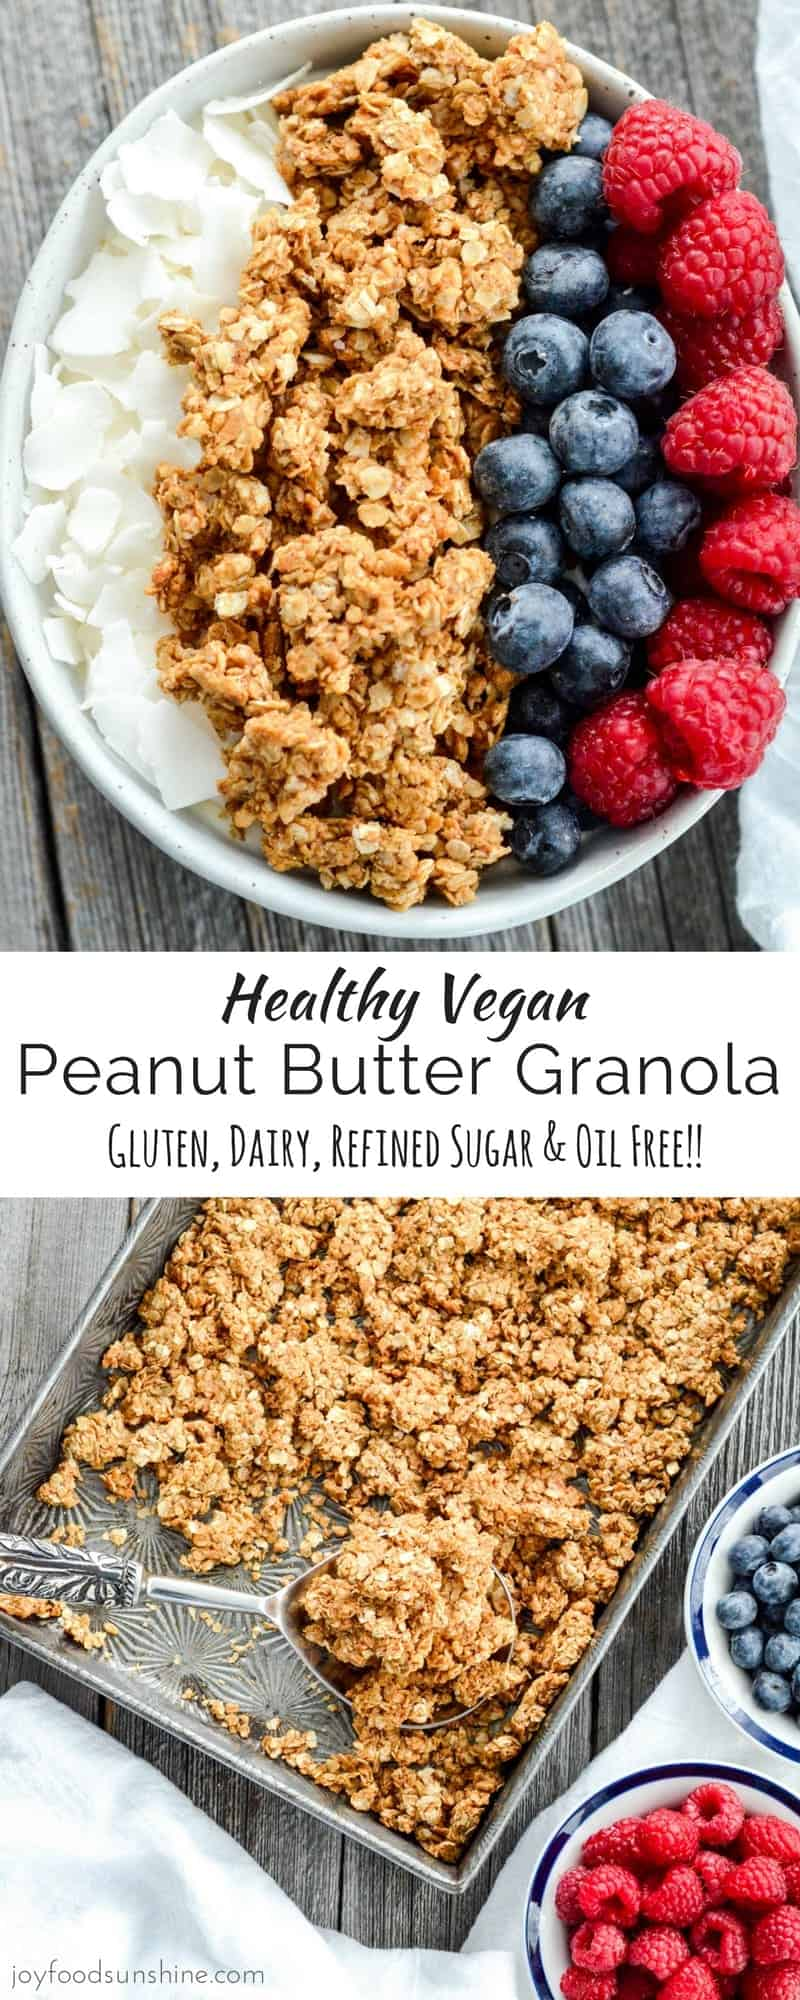 Healthy peanut butter granola joyfoodsunshine this healthy peanut butter granola is the perfect make ahead breakfast recipe with only ccuart Image collections